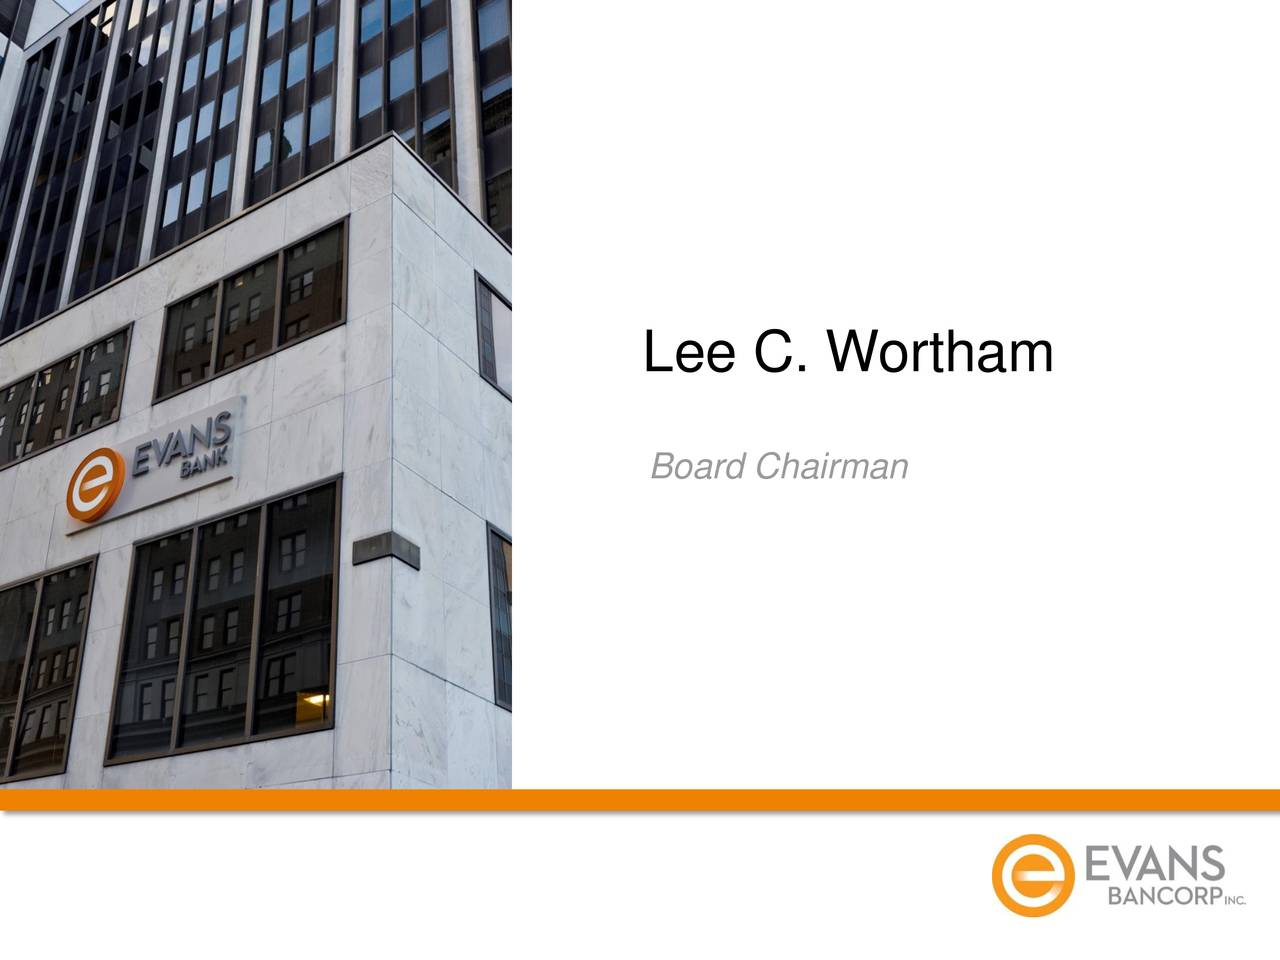 Lee C. Wortham